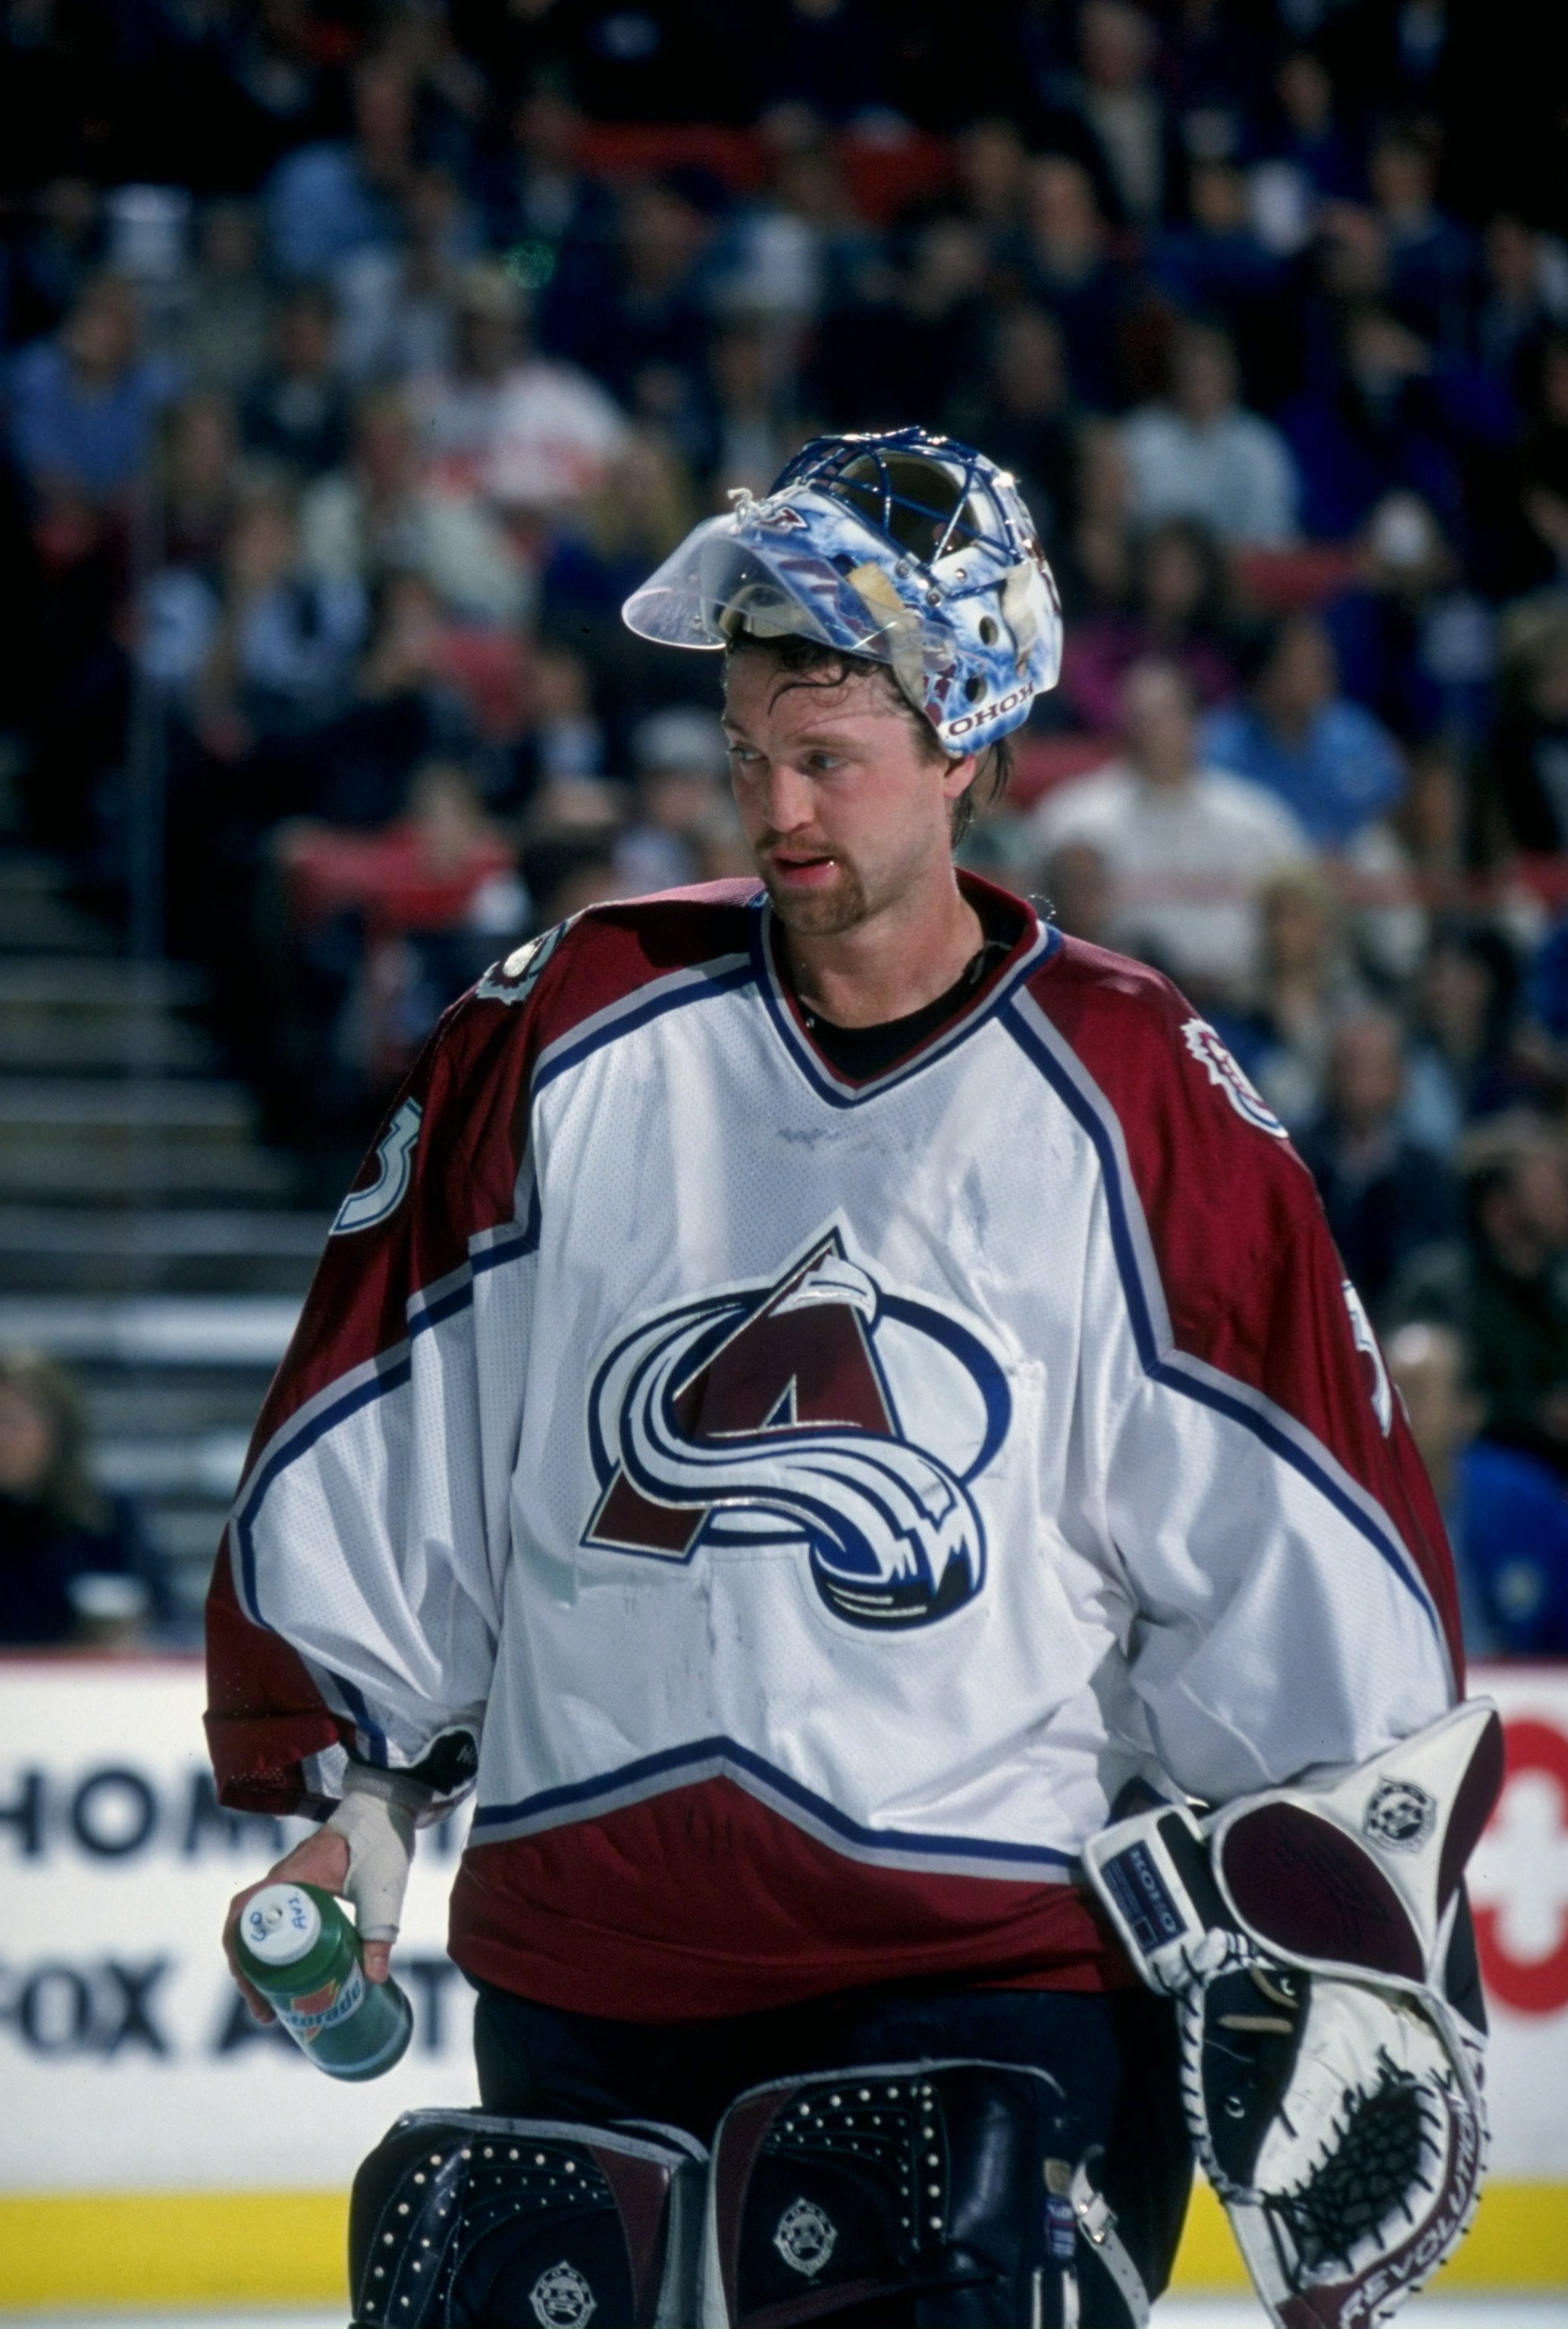 16 Dec 1996: Goaltender Patrick Roy of the Colorado Avalanche in action during a game against the Detroit Red Wings at the McNichols Arena in Denver, Colorado. The Avalanche defeated the Red Wings 4-3. Mandatory Credit: Nevin Reid /Allsport